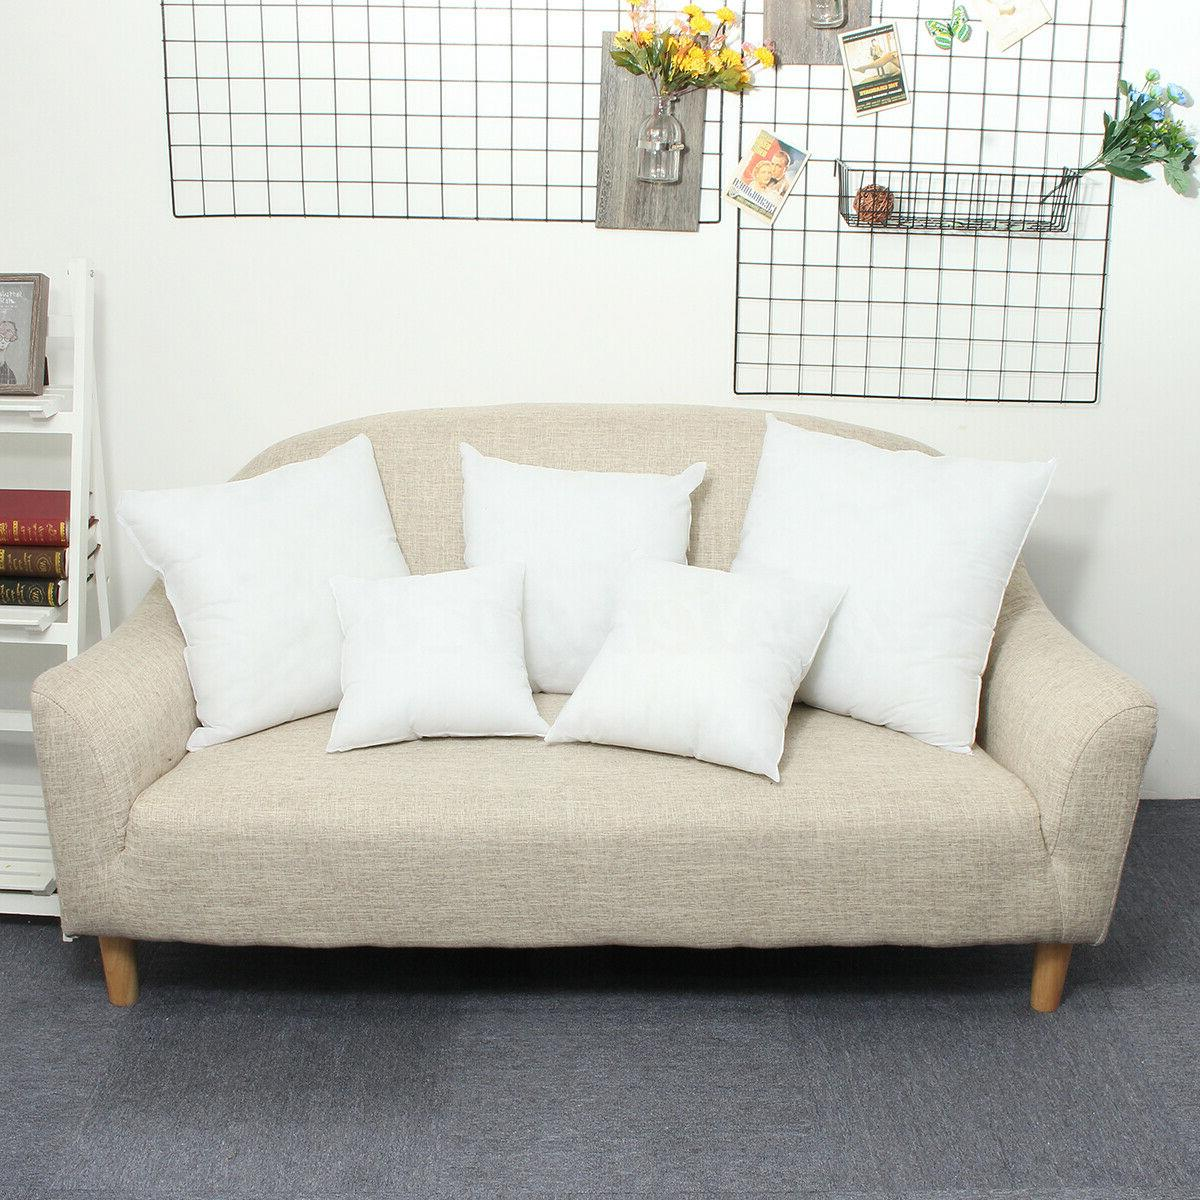 Euro Cushion Pillow Sofa Pillowcase Insert